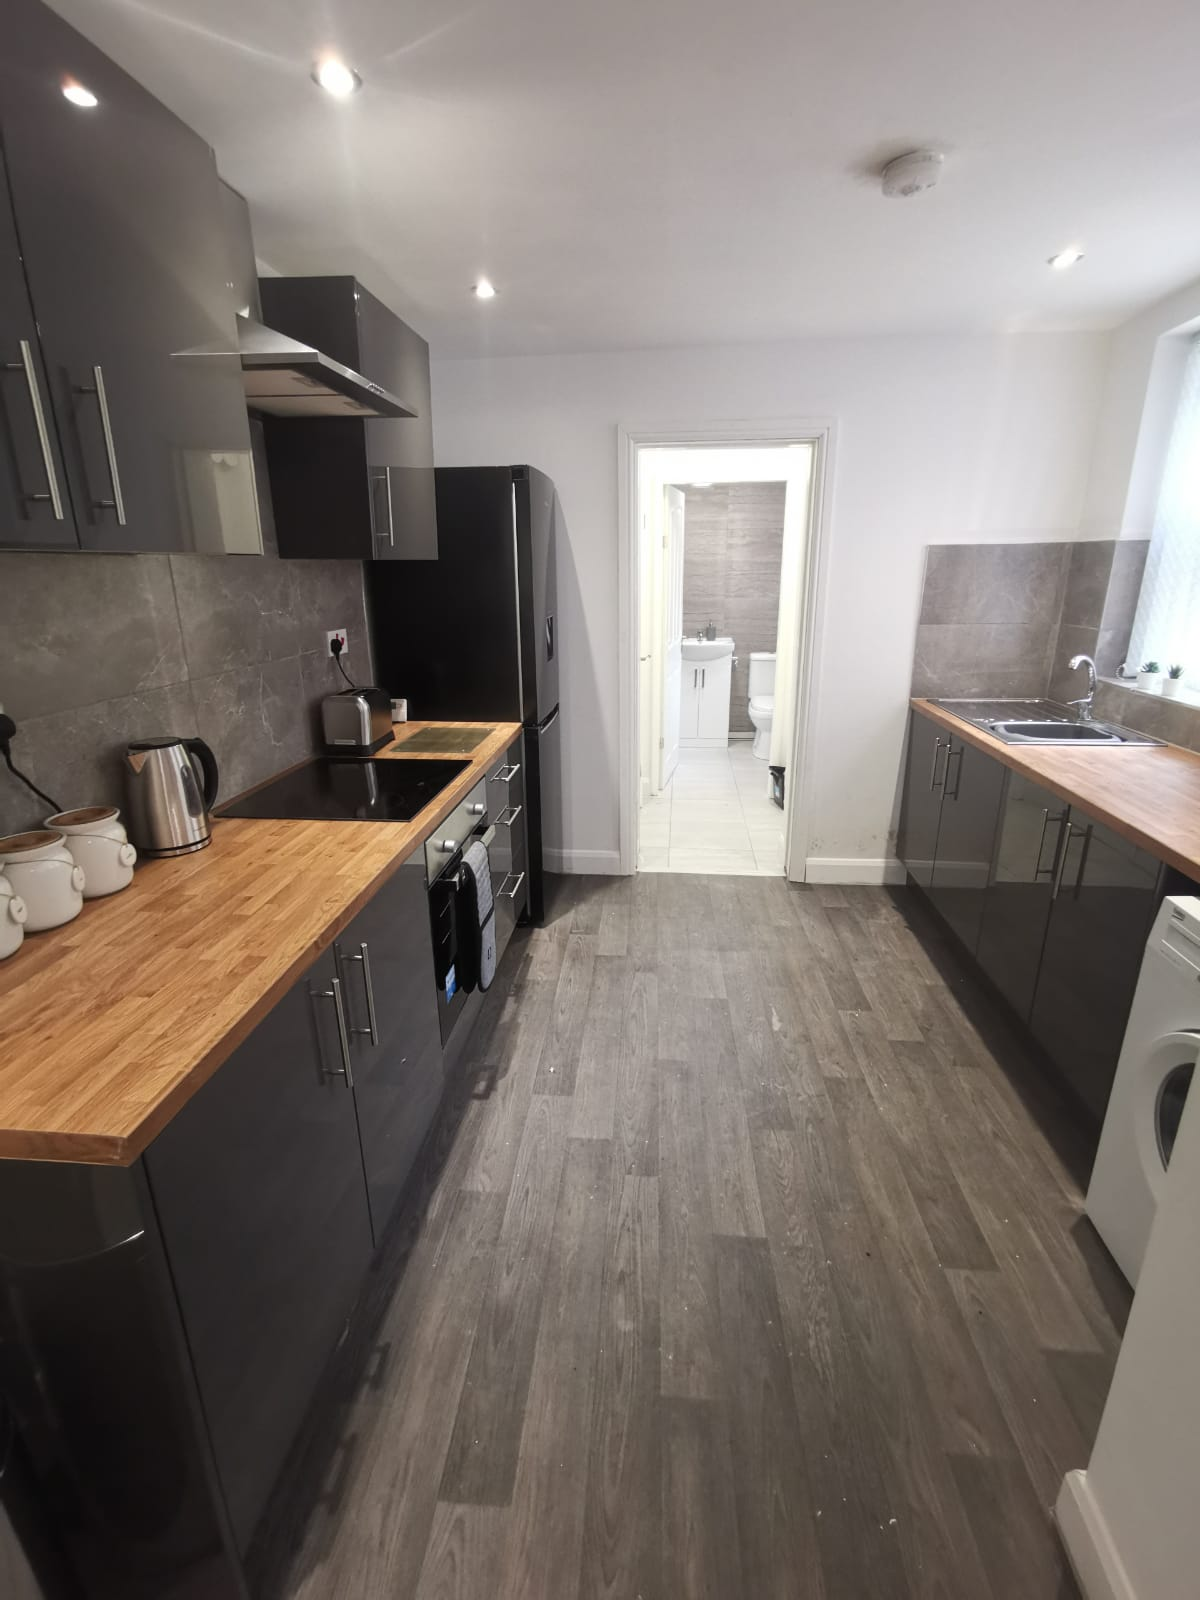 Variety of newly refurbished rooms around L6 and L4